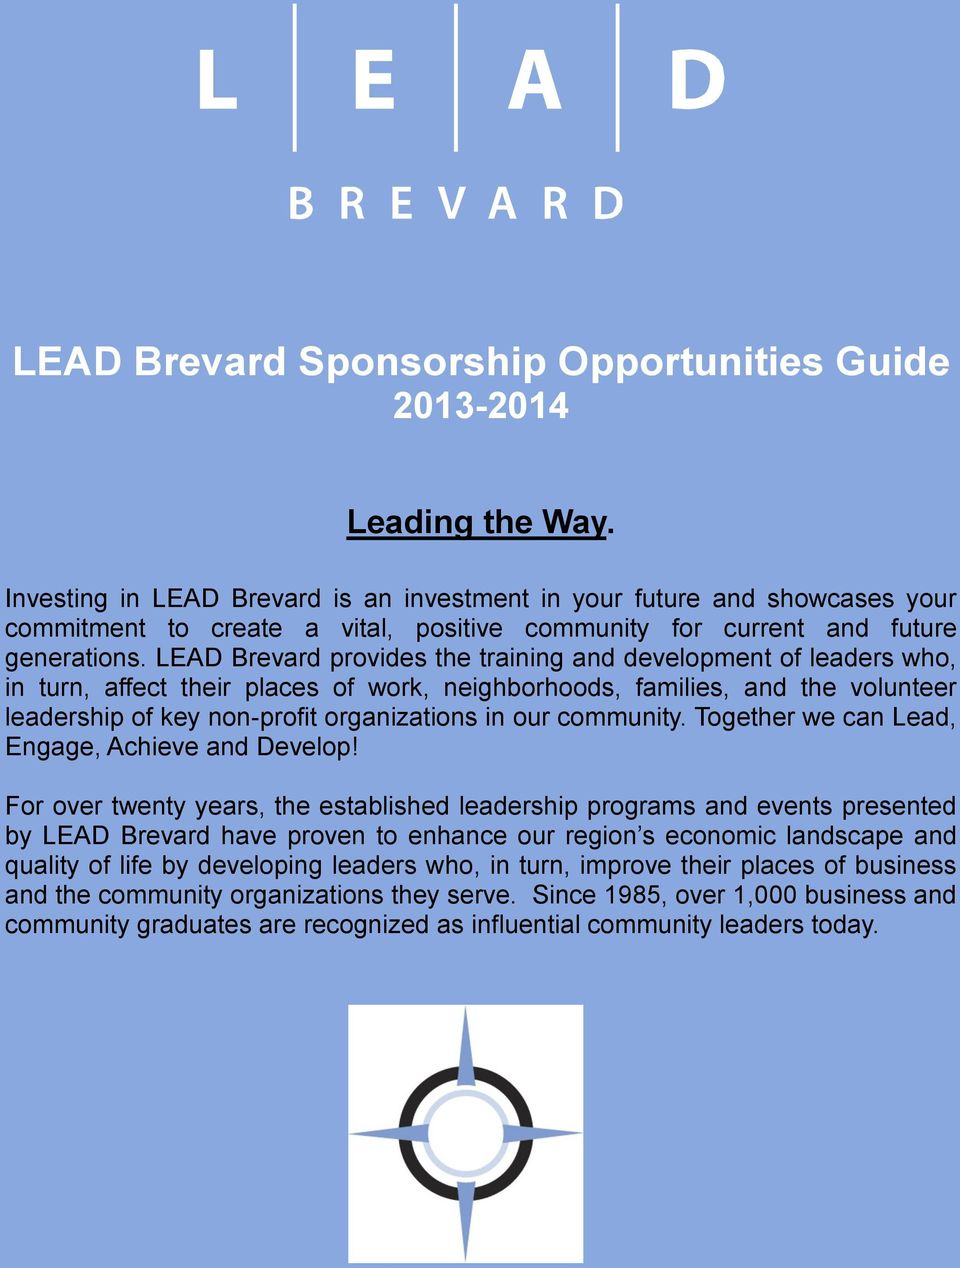 LEAD Brevard provides the training and development of leaders who, in turn, affect their places of work, neighborhoods, families, and the volunteer leadership of key non-profit organizations in our